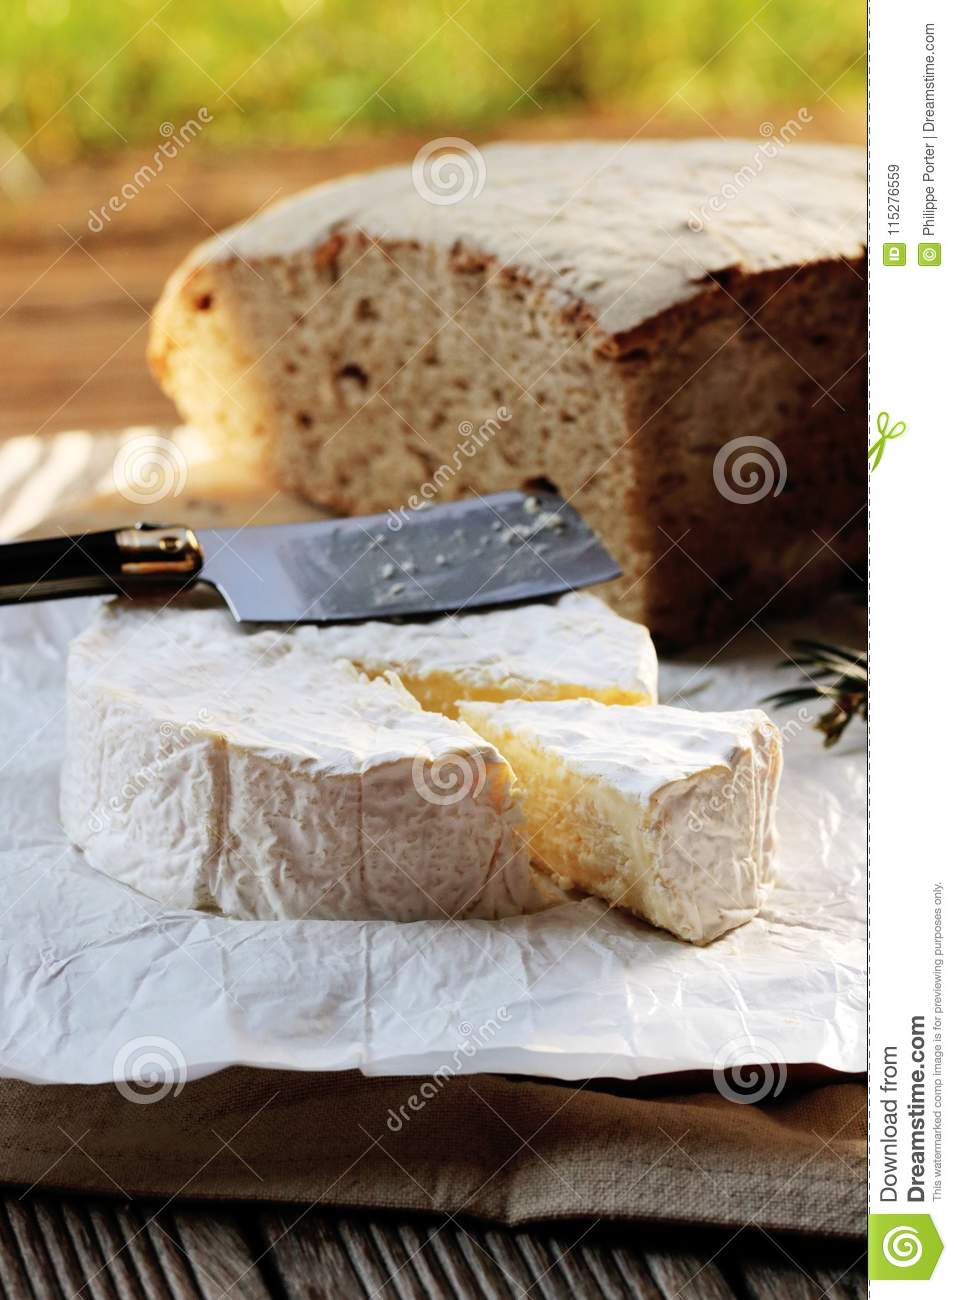 camembert french cheese normandy france stock image image of bread rh dreamstime com